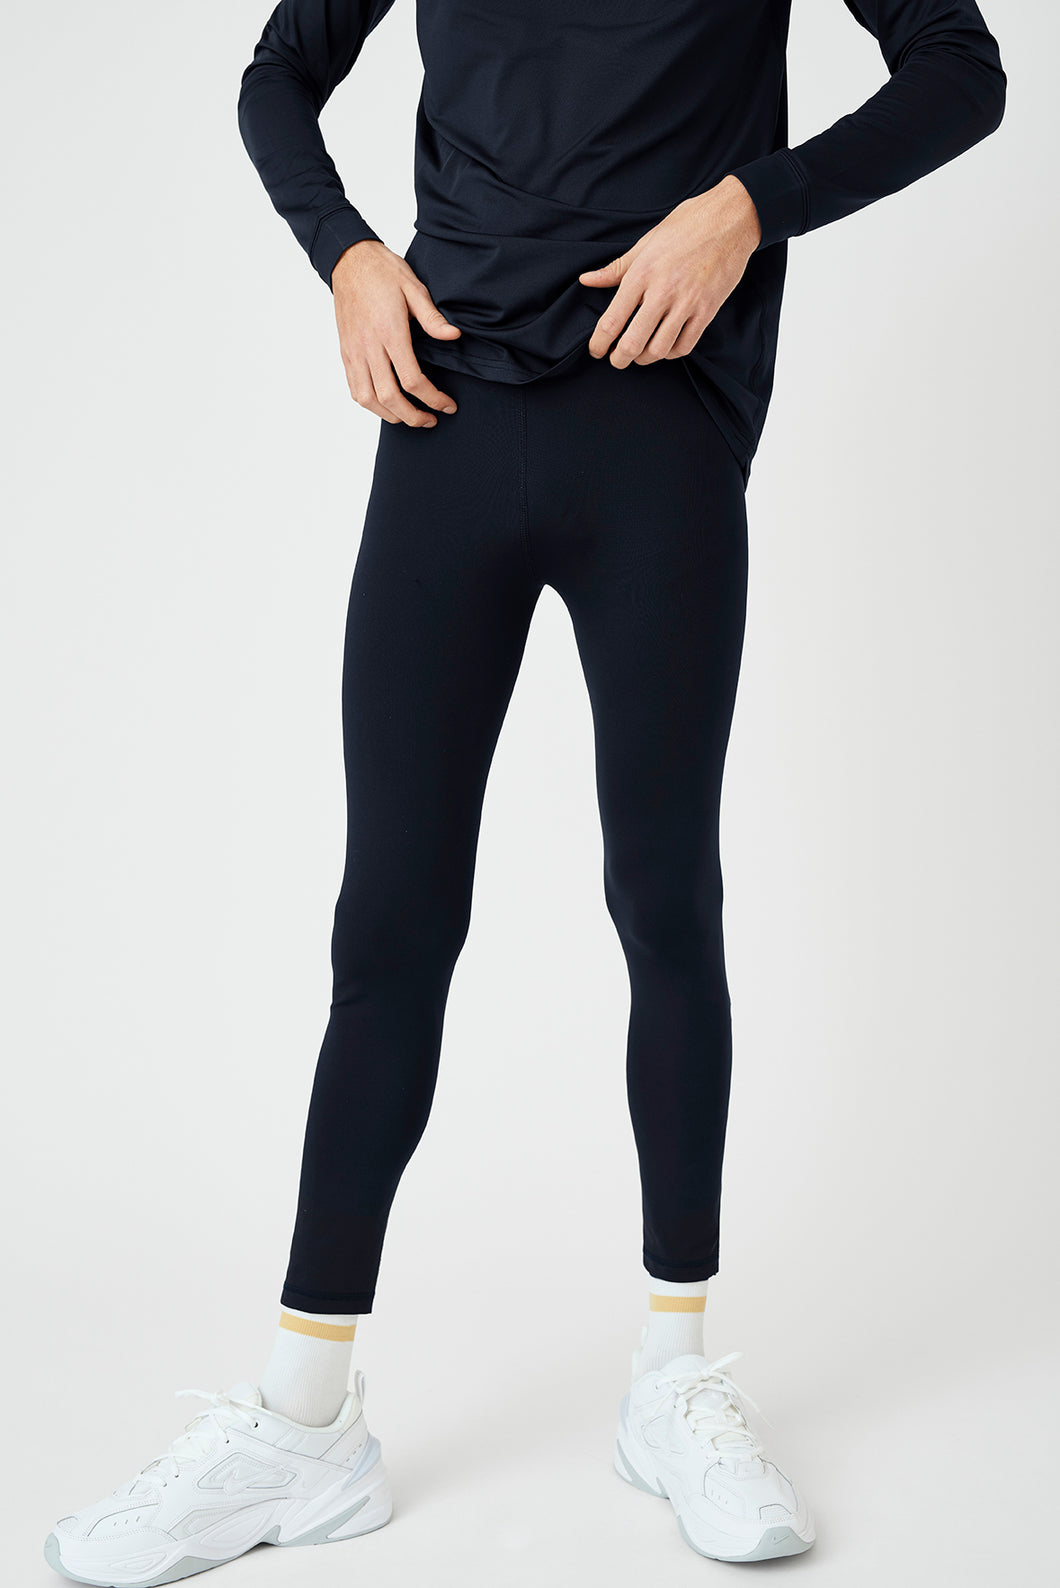 Bohr mens running tights